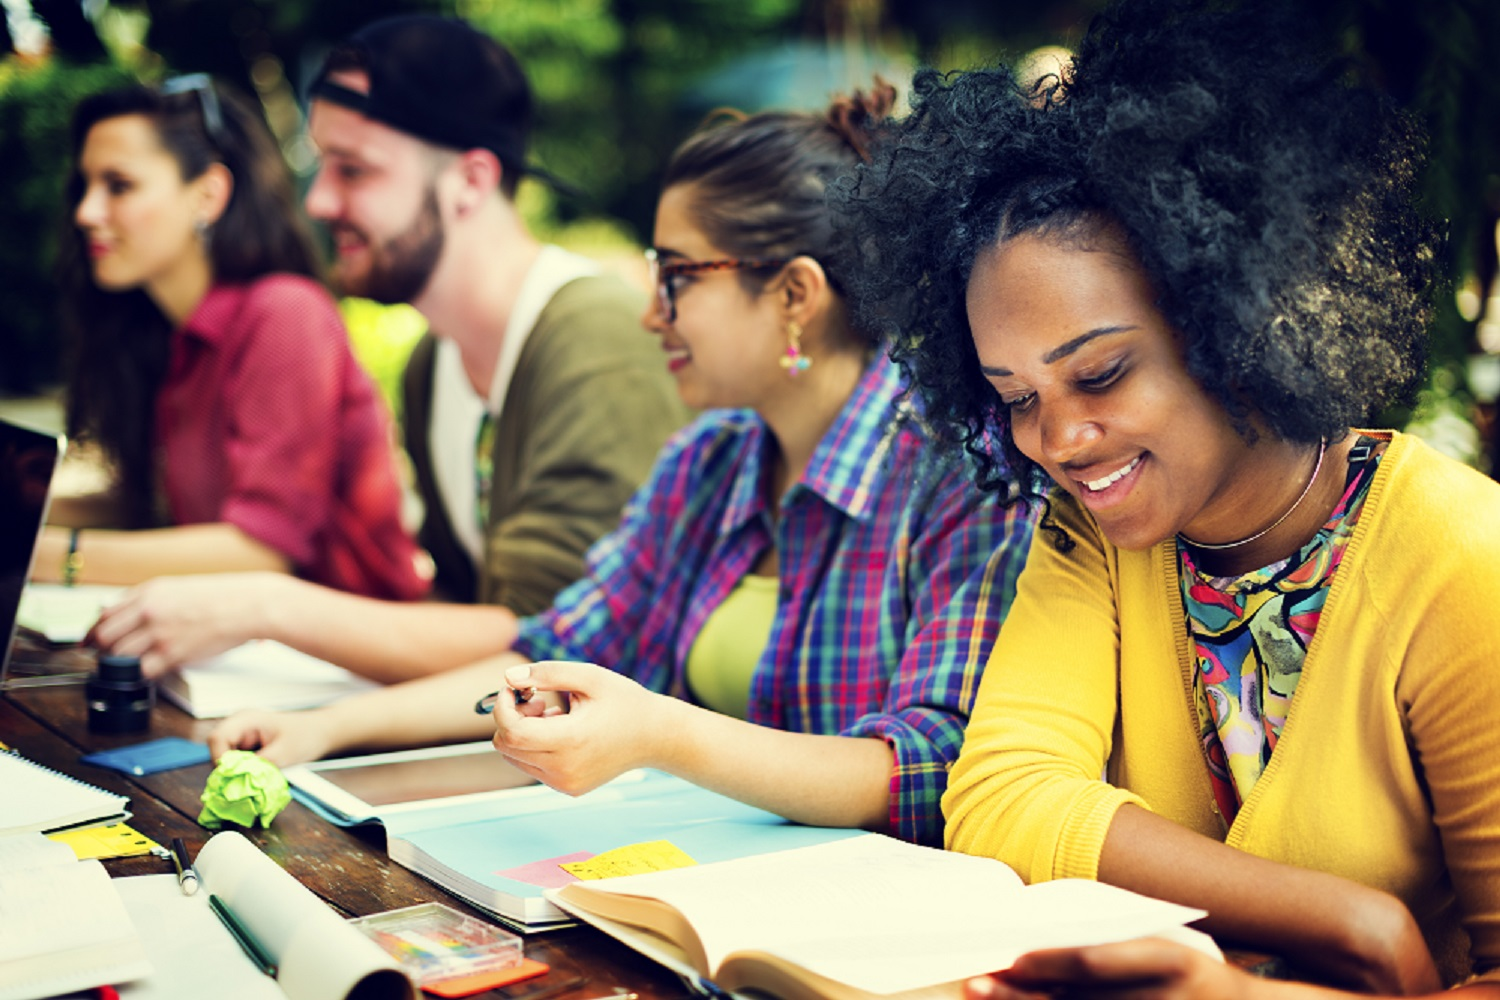 Teens-college-students-group-smiling-reading-yellow-jed